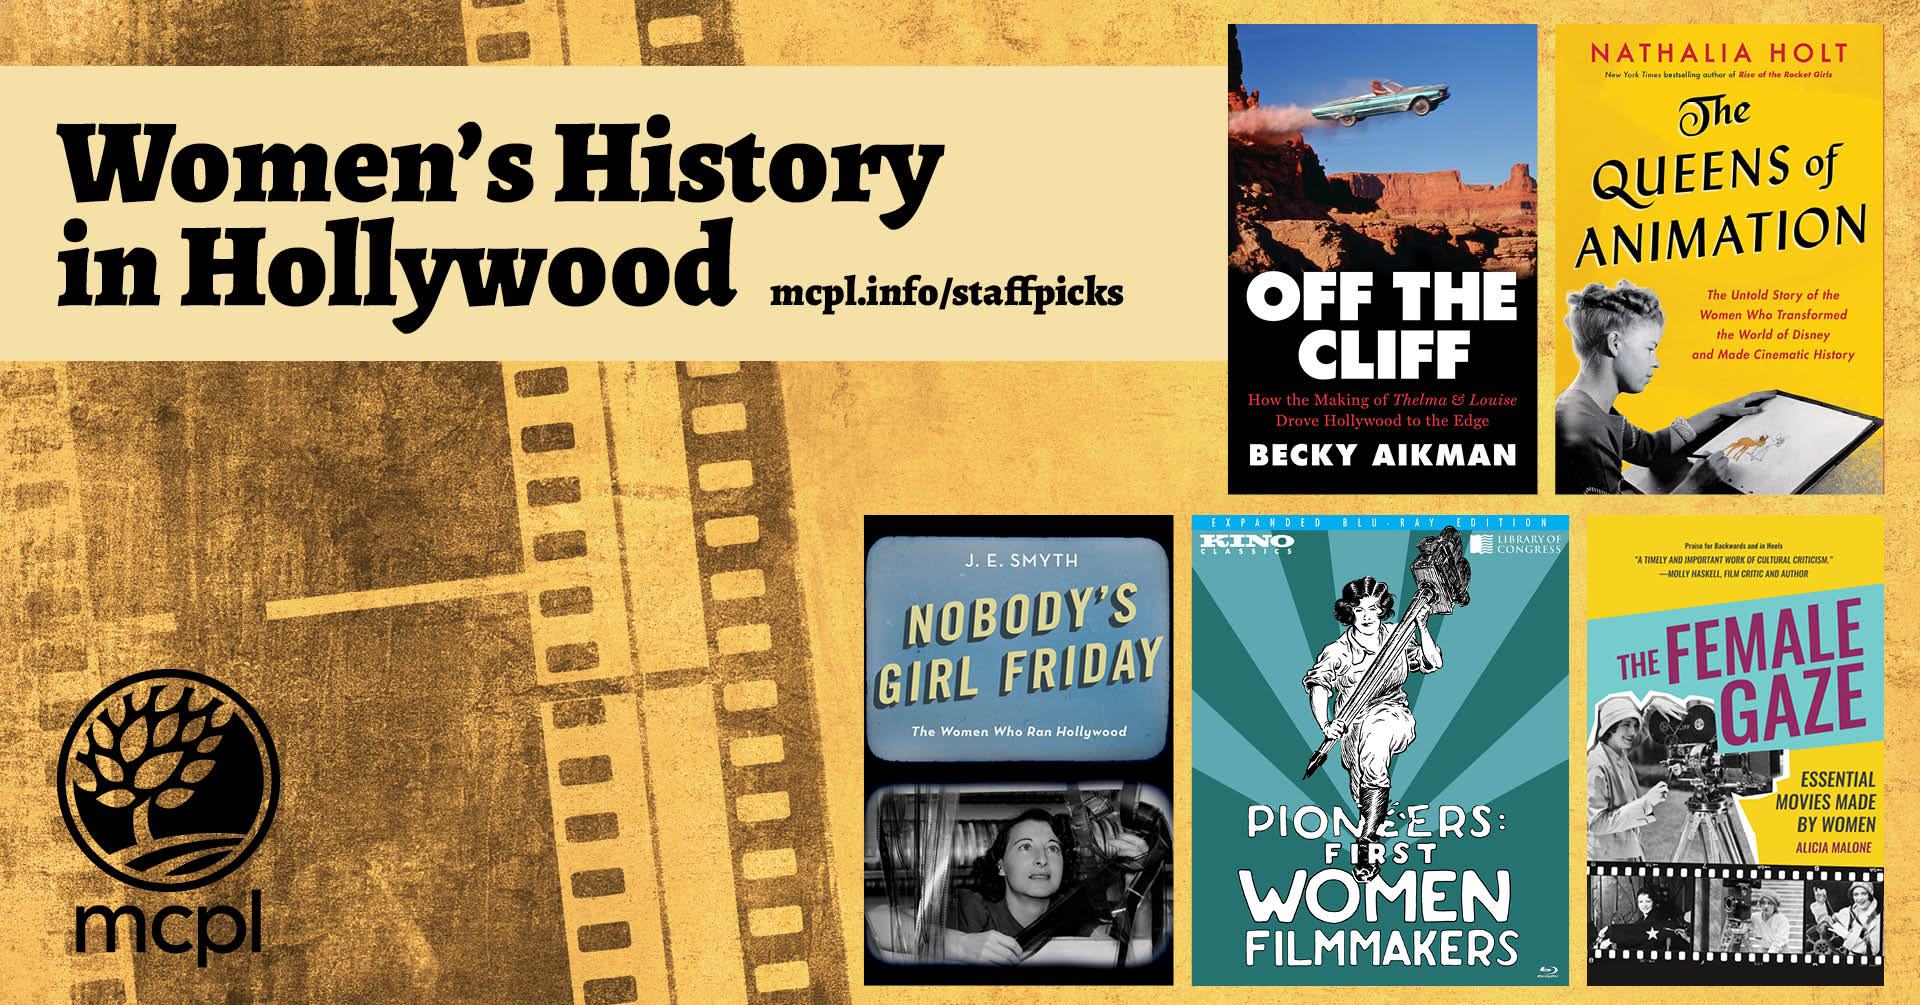 Covers of books about Women's history in Hollywood over a sepia colored film background.